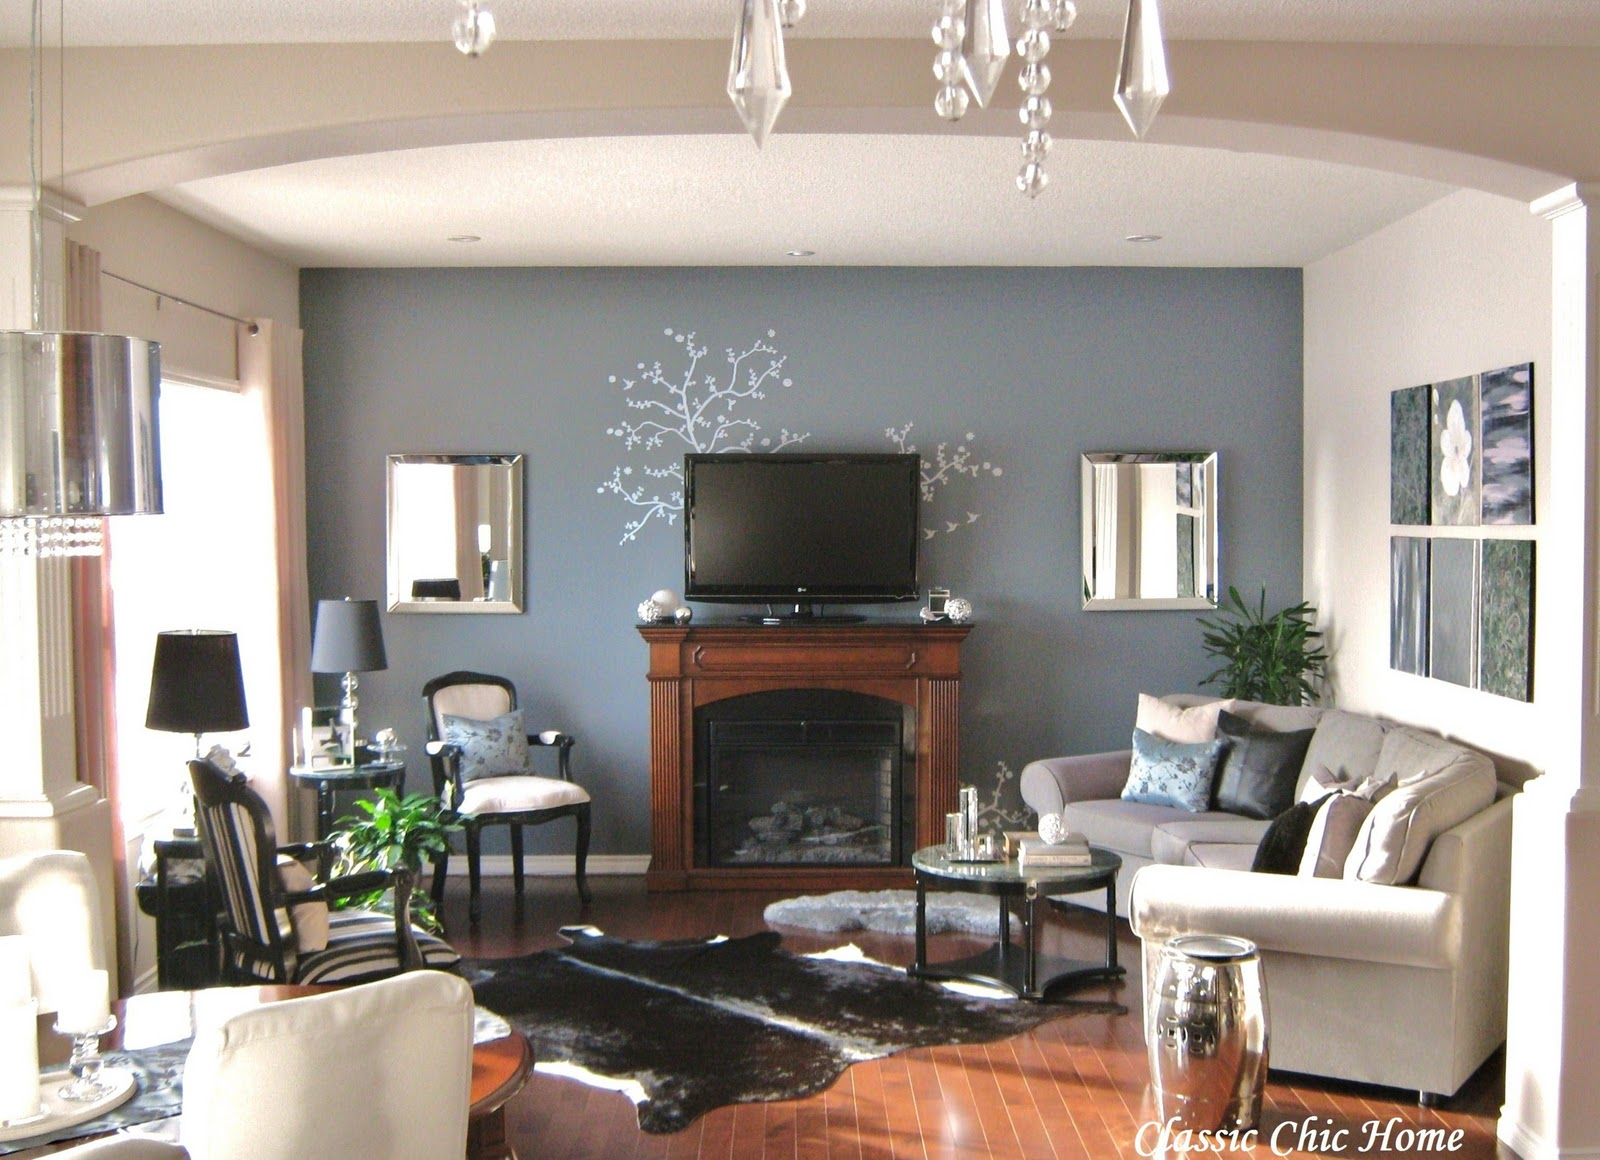 Fireplace living room ideas corner home improvement and design ideas to help you improve the look and